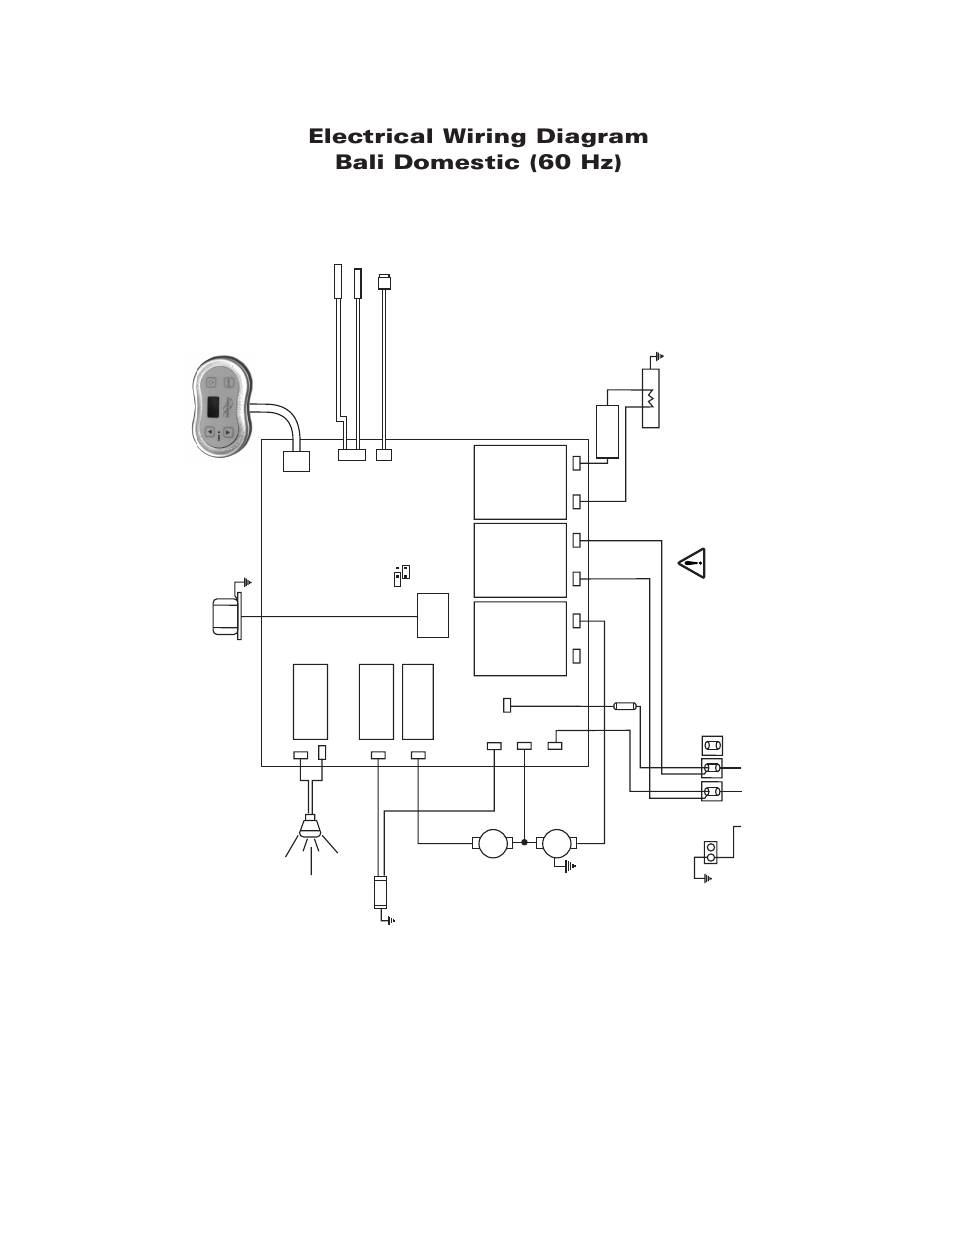 Electrical Wiring Diagrams Bali Domestic 60 Hz Diagram 120 Volt 4 Schematics Wire Sundance Spas Maxxus User Manual Page 31 37